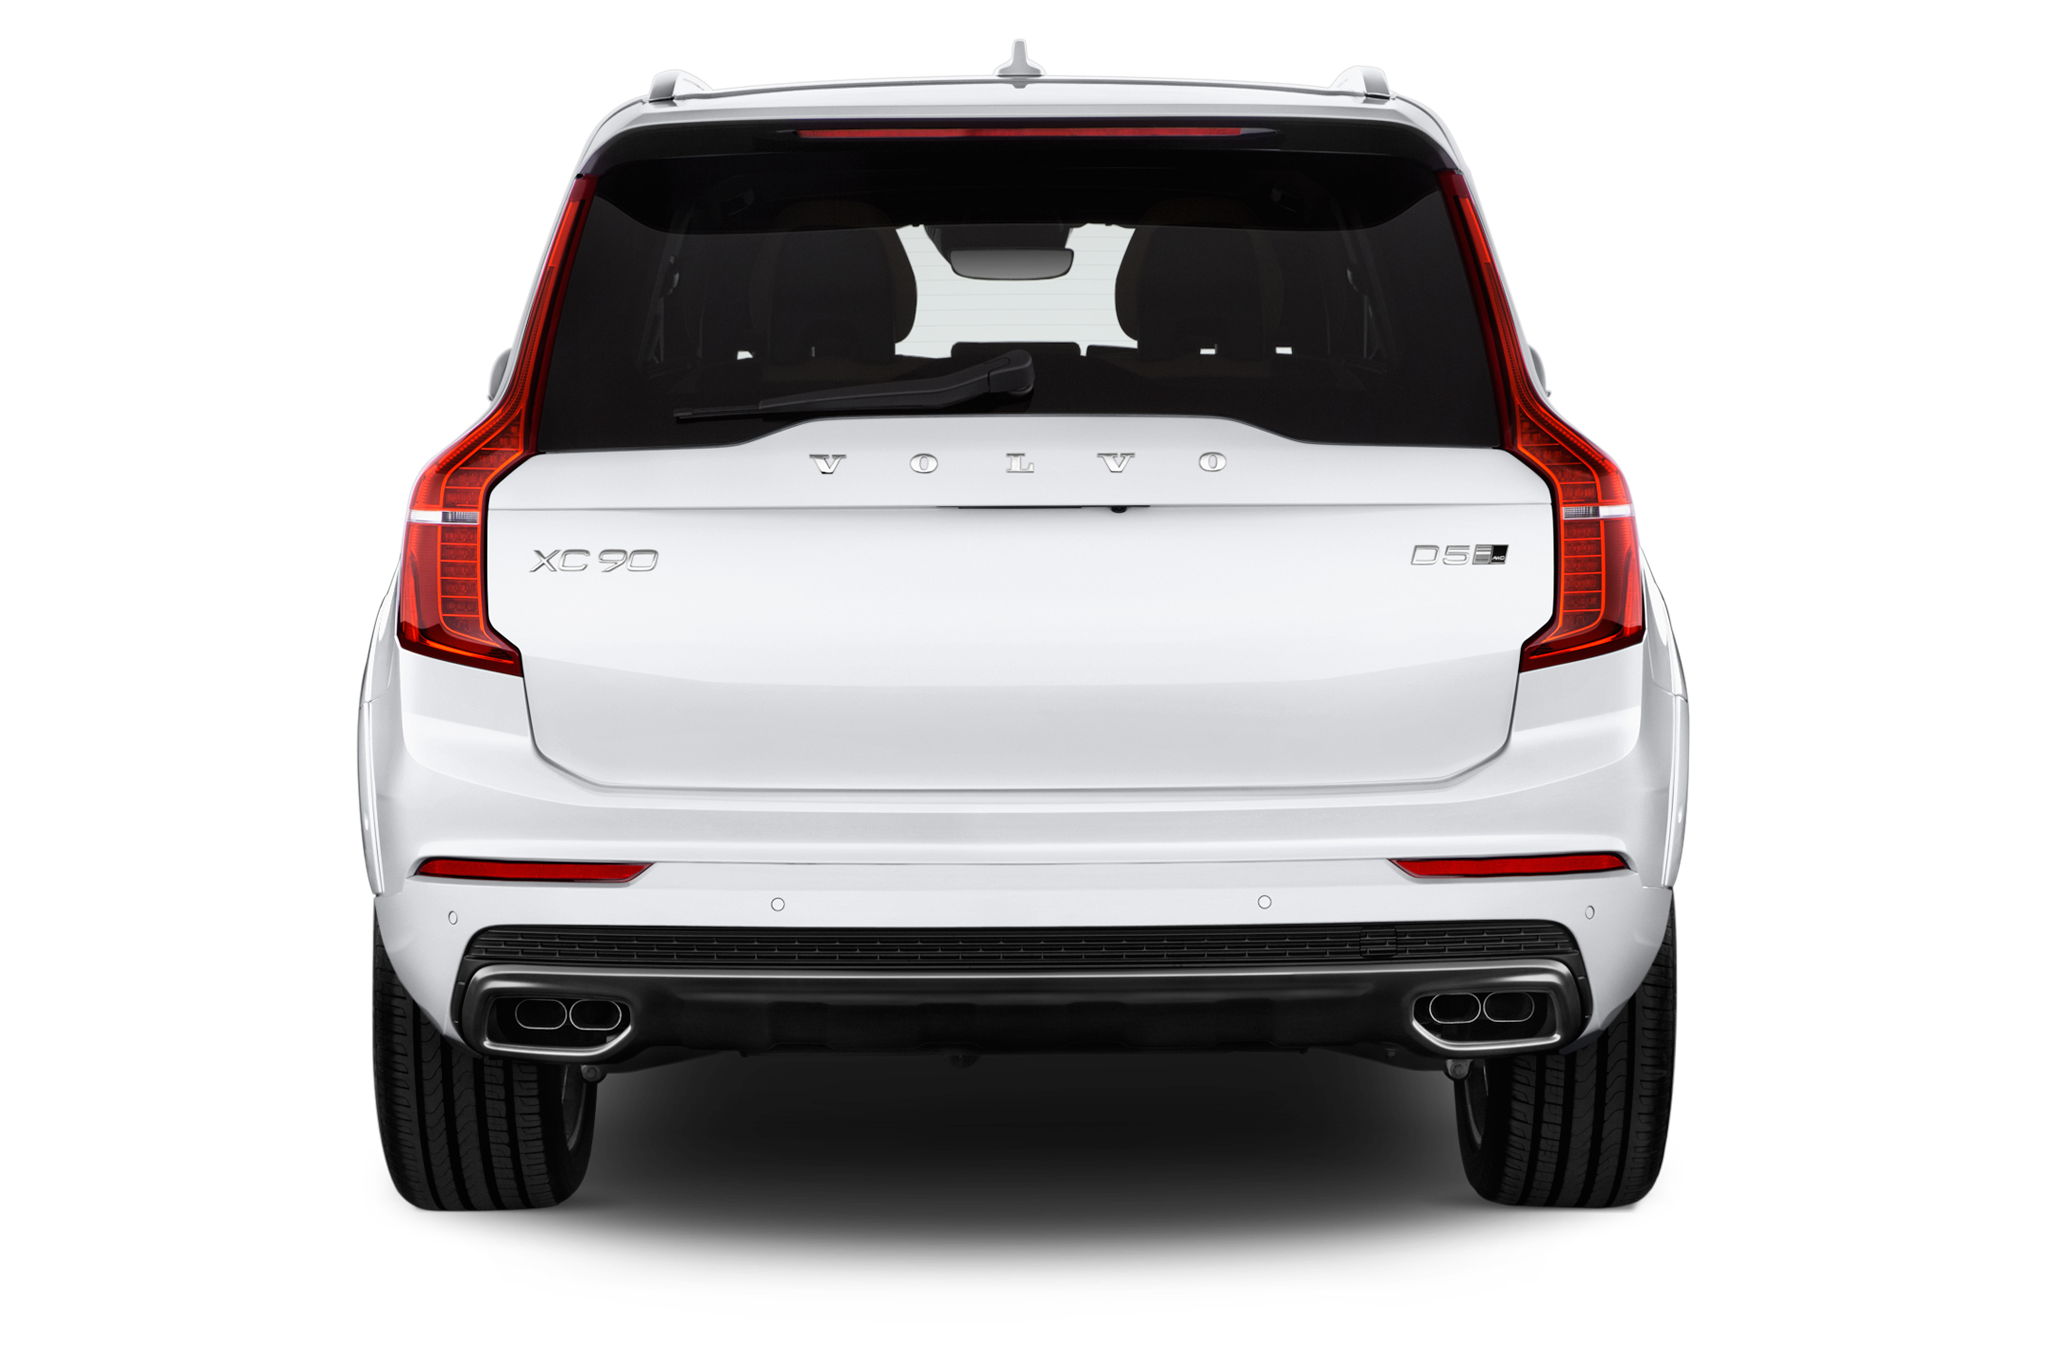 Volvo XC90 SUV | Vehicle Review | Arval UK Ltd